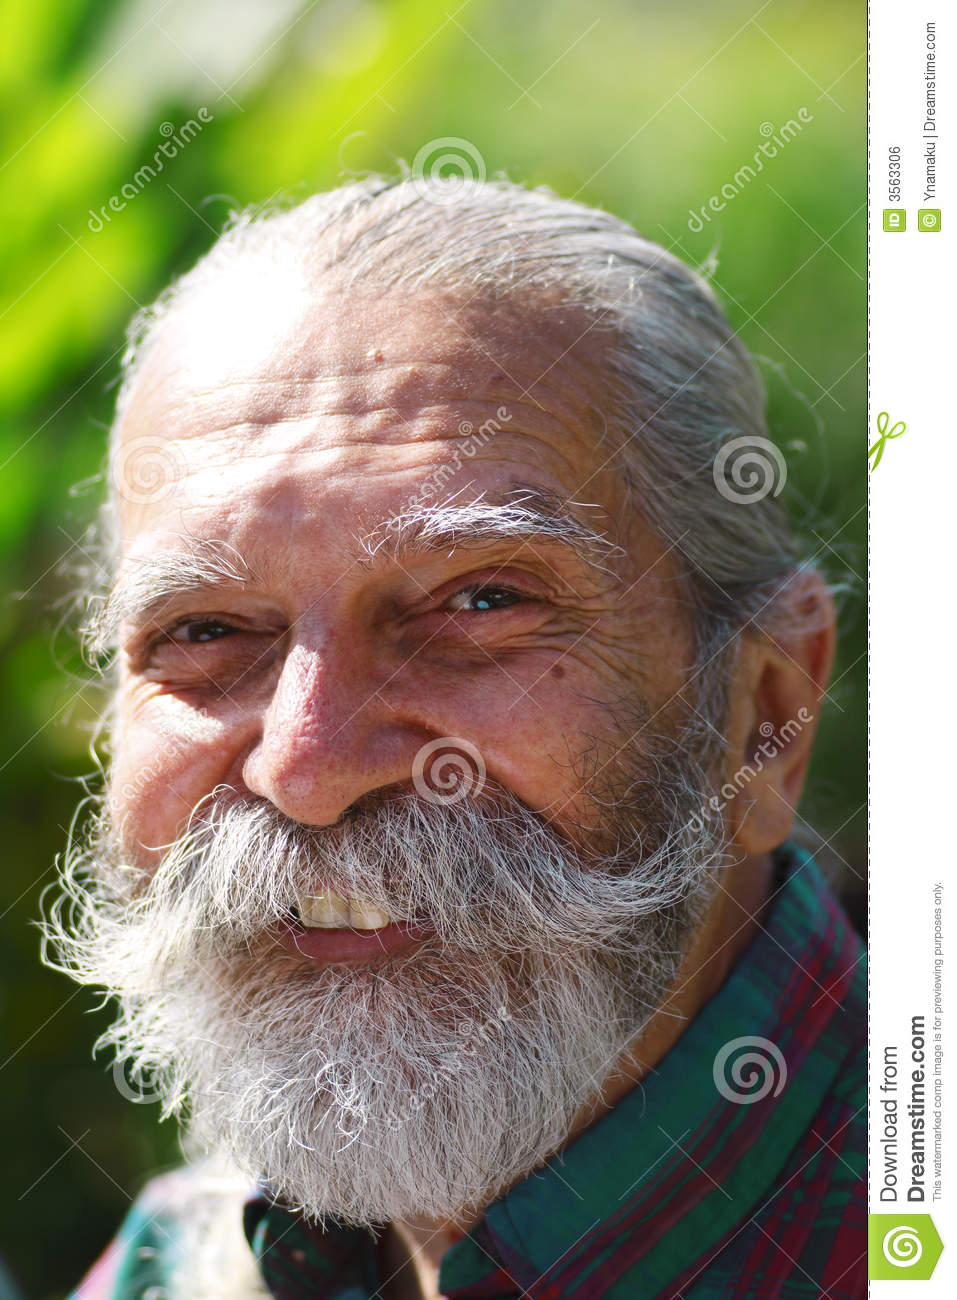 old man with a beard royalty free stock image image 3563306 happy retirement clipart  balloons happy retirement clip art images